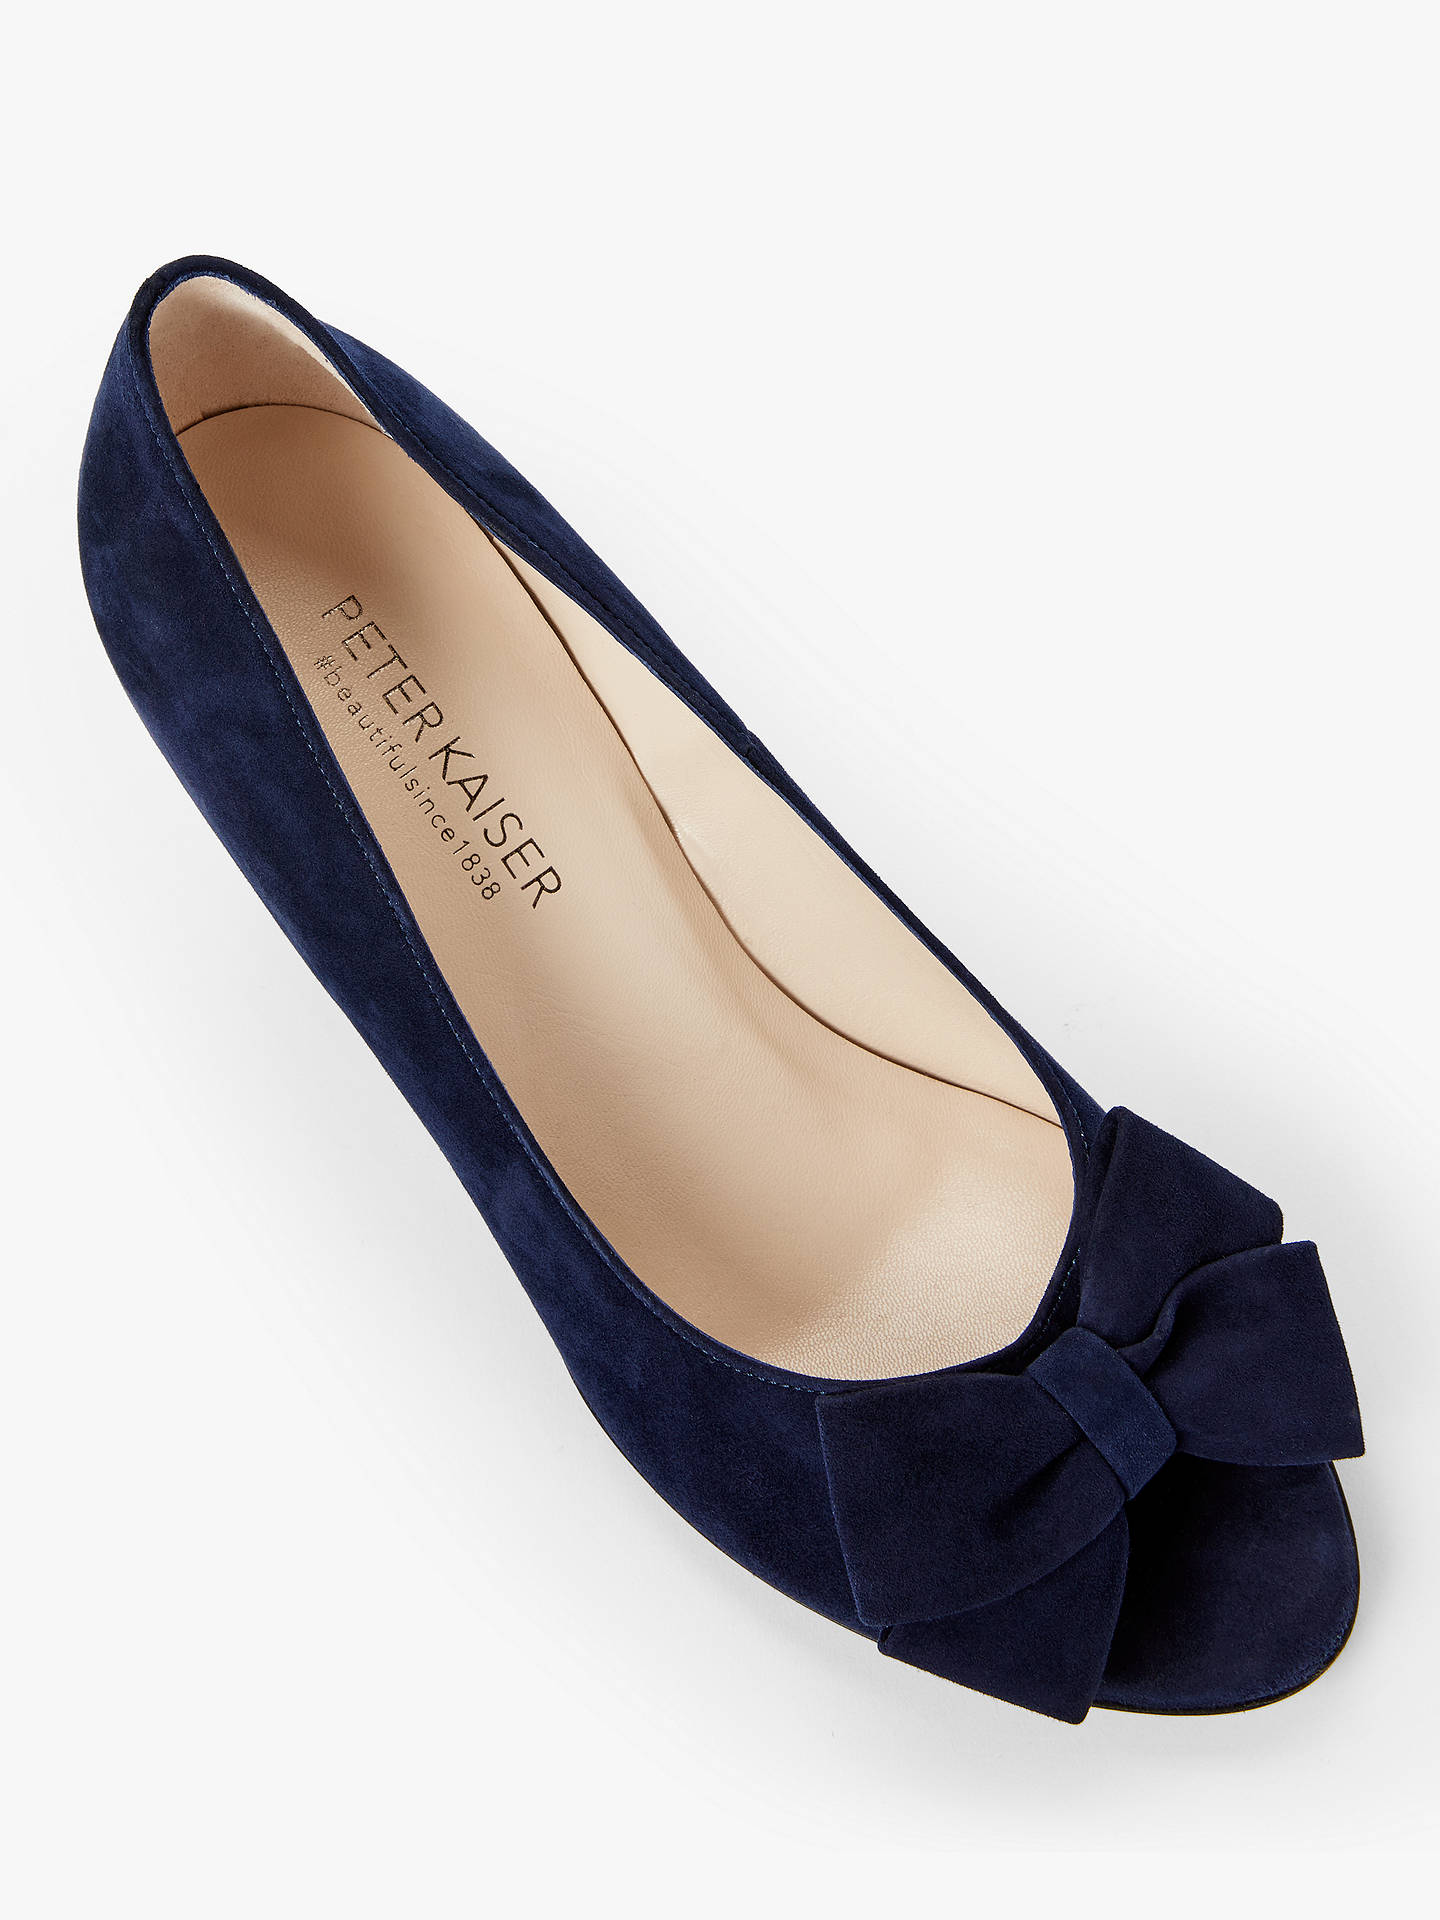 save off 961b4 ef7dc Peter Kaiser Alenja Bow Cone Heel Court Shoes, Notte Suede